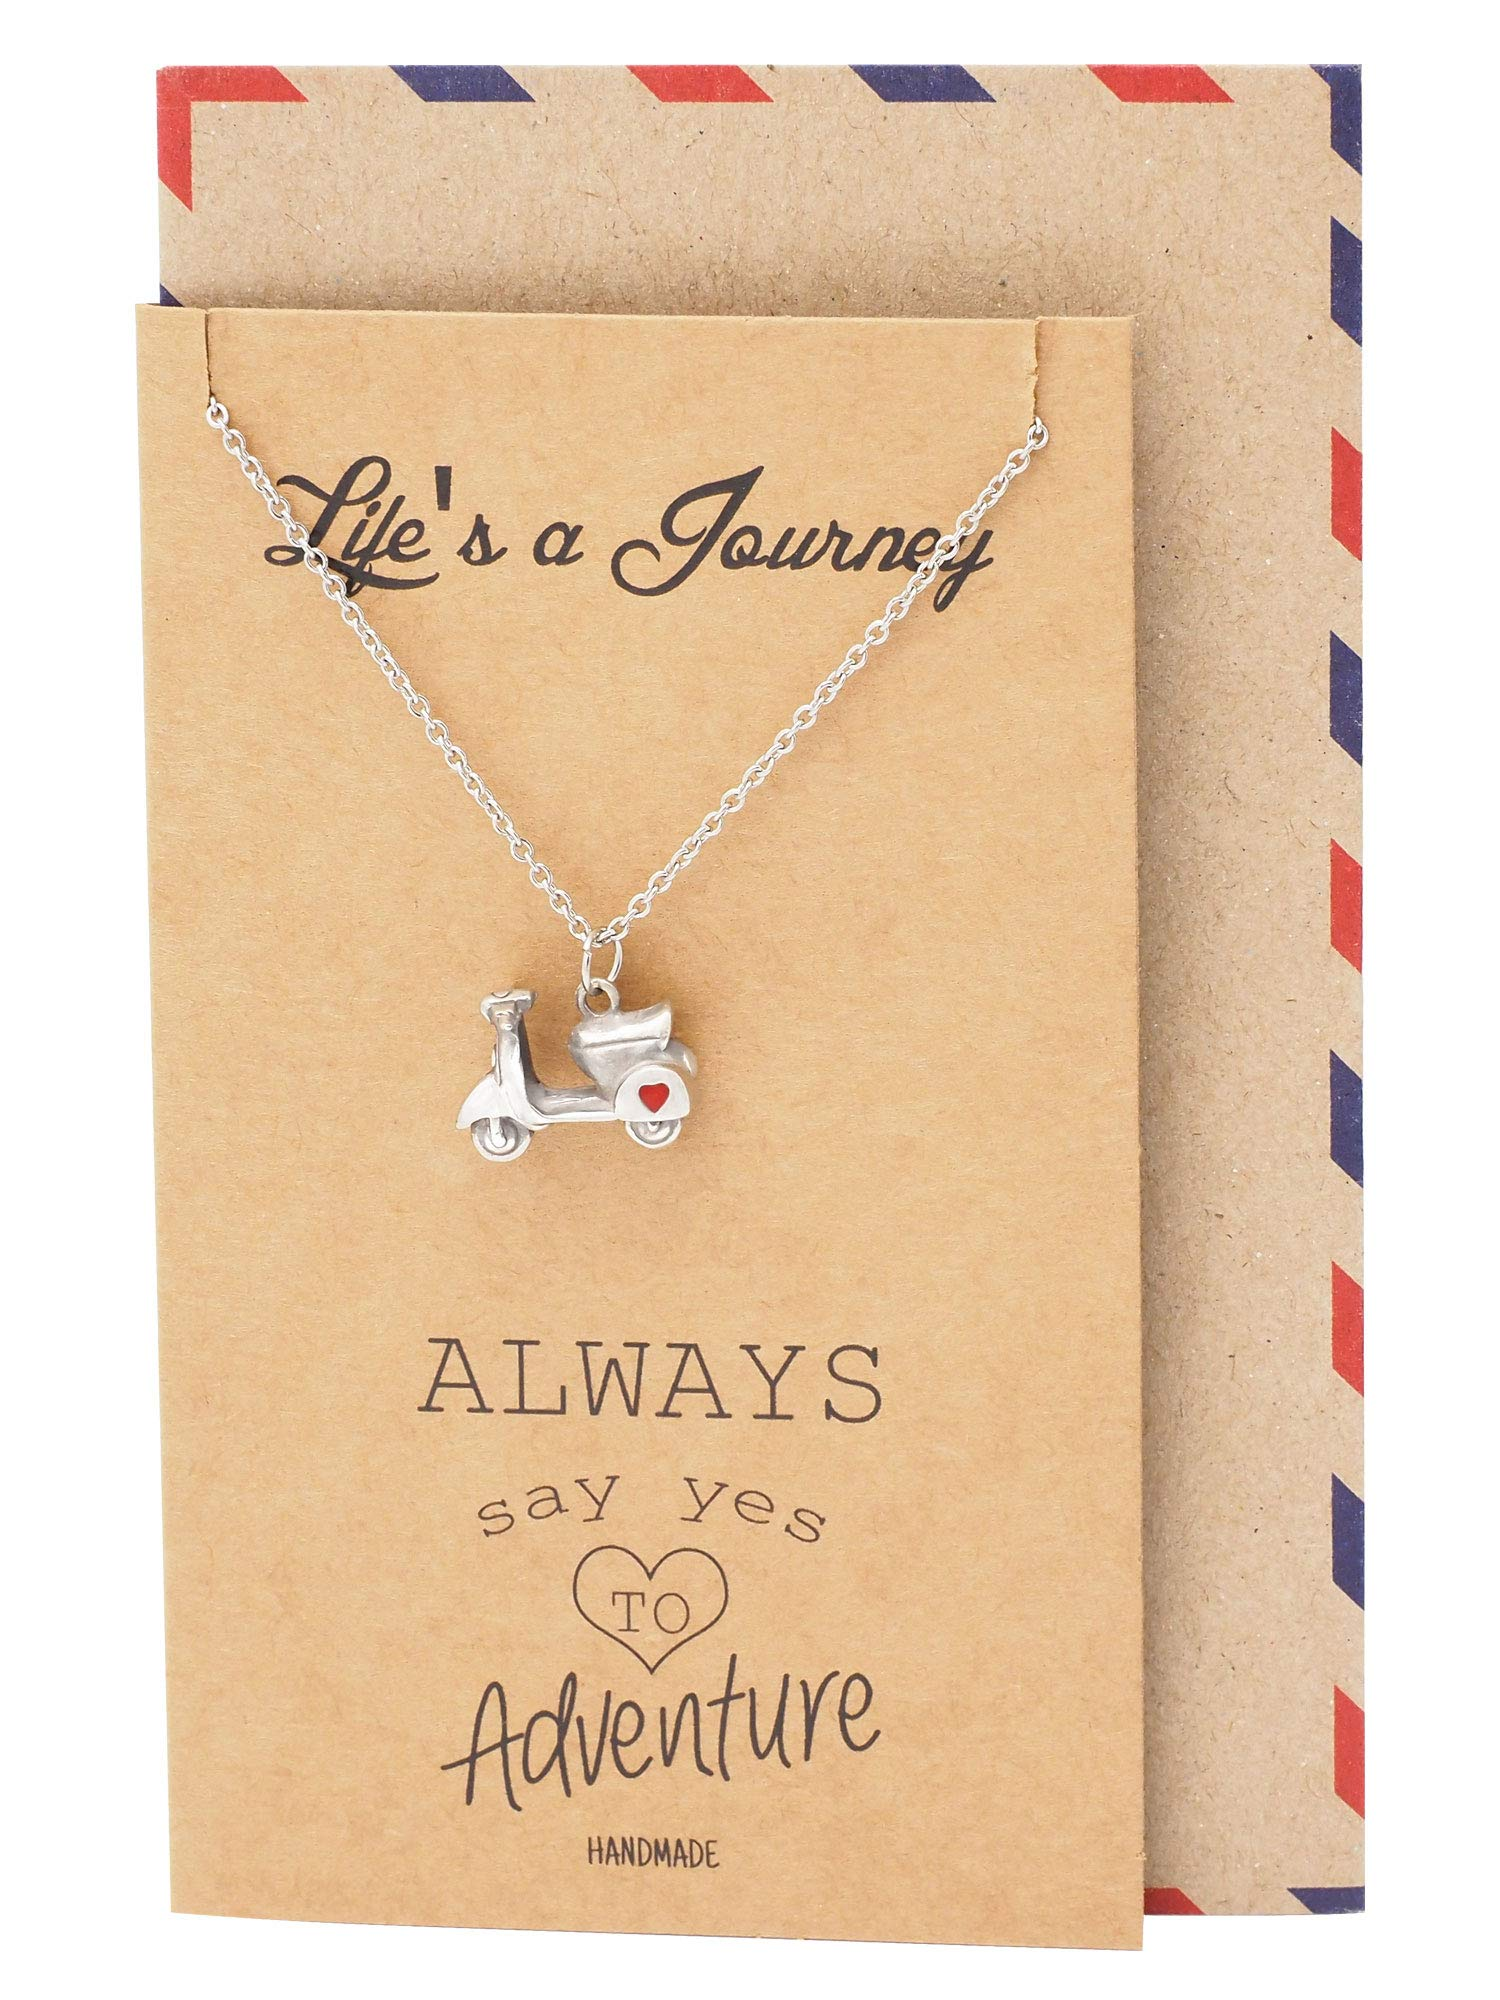 Quan Jewelry Graduation Gifts for Her Journey Necklace, Scooter Pendant Best Travel Gifts for Women with Inspirational Quote Card by Quan Jewelry